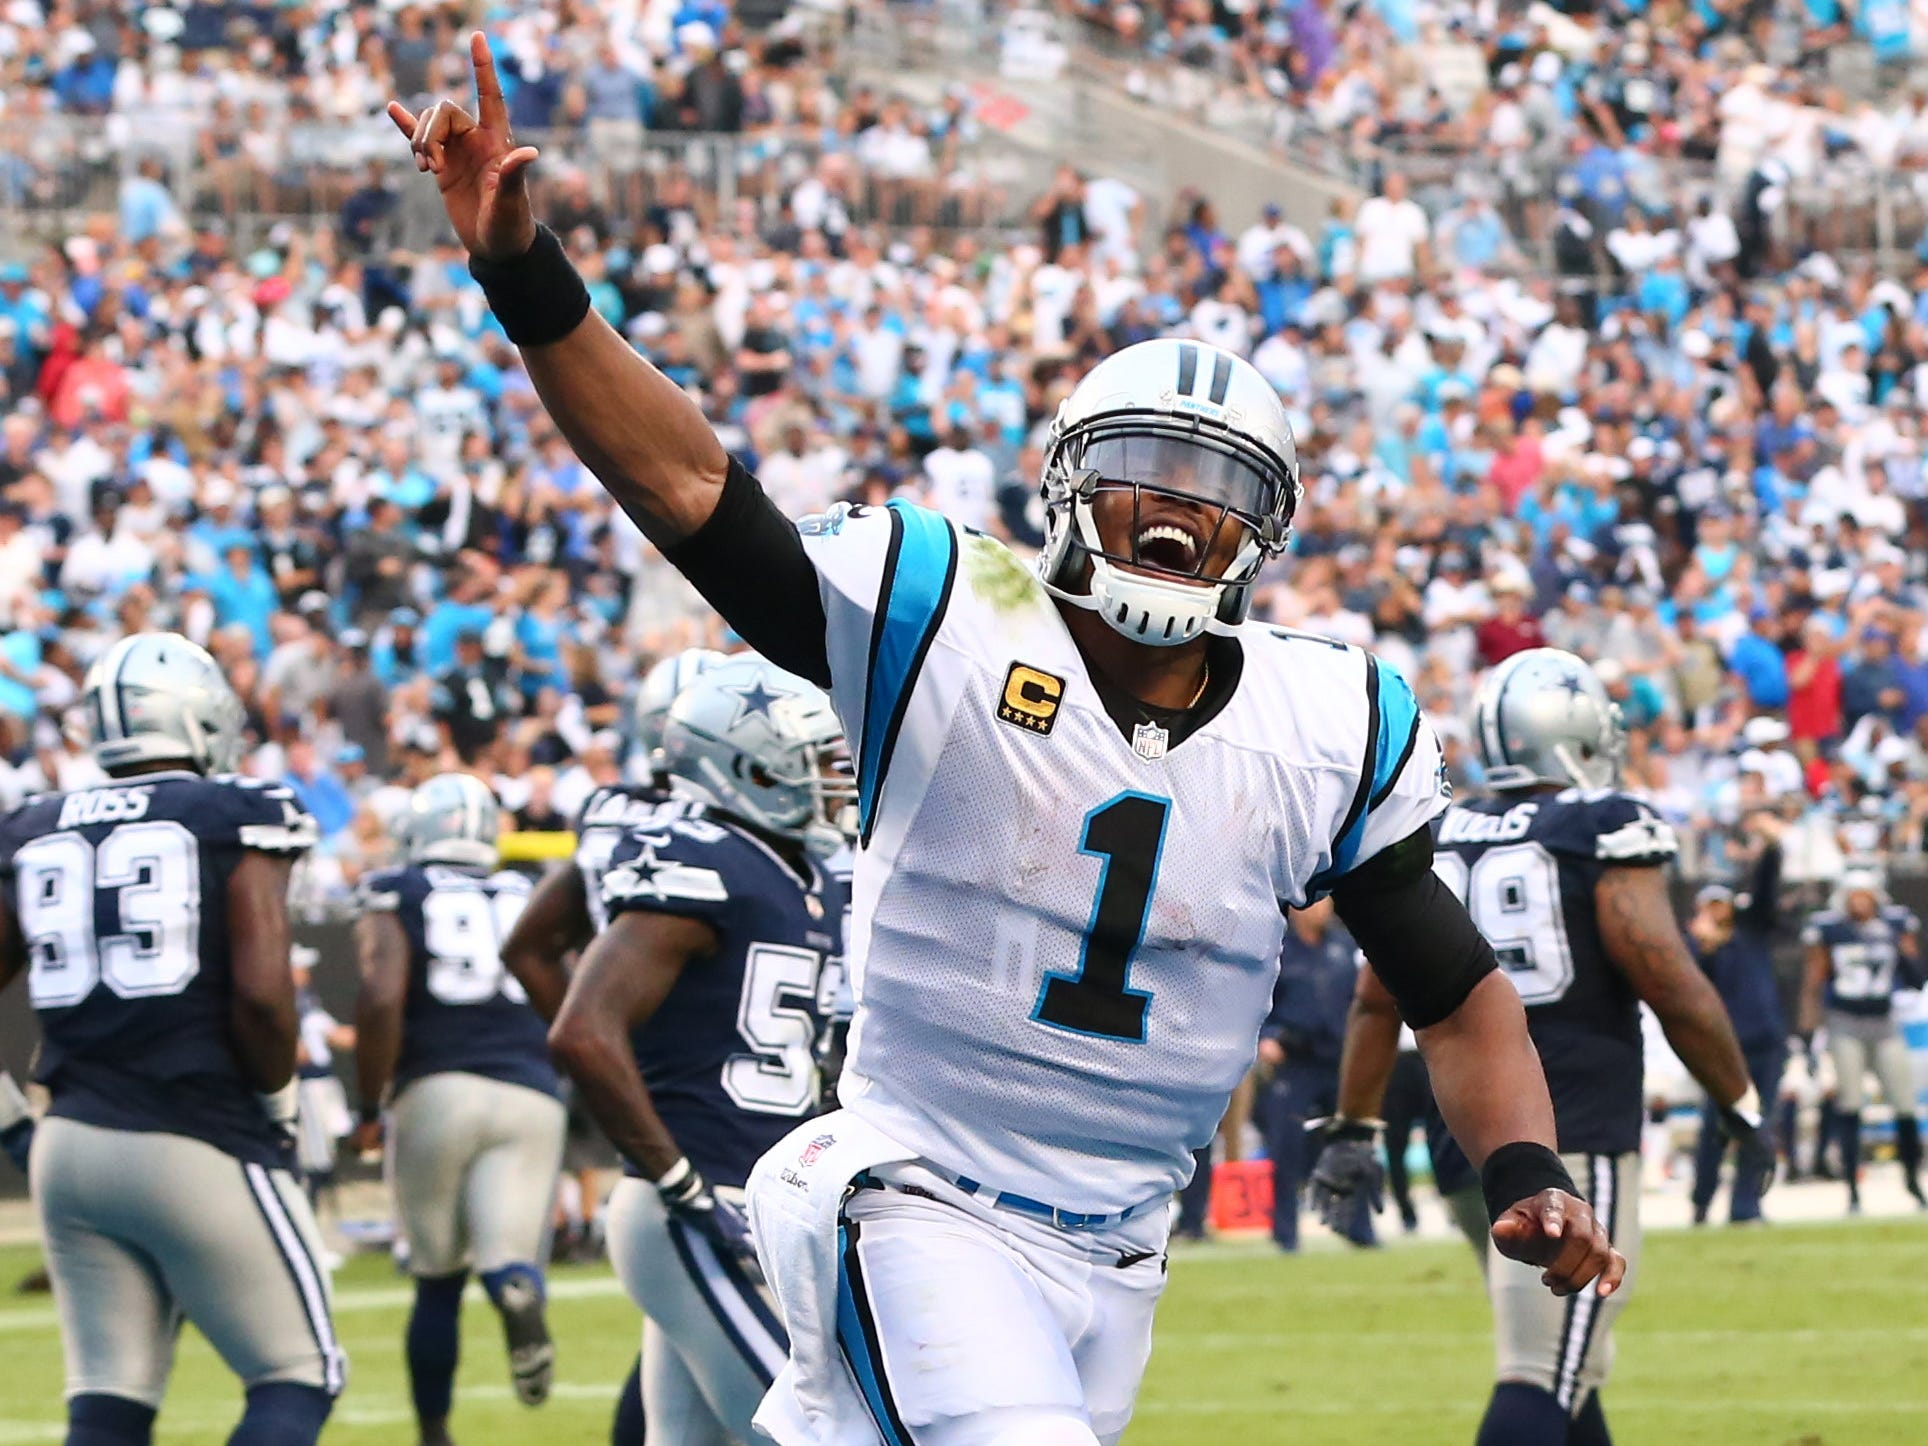 Cam Newton celebrates after a Carolina Panthers touchdown in the second half against the Dallas Cowboys at Bank of America Stadium.